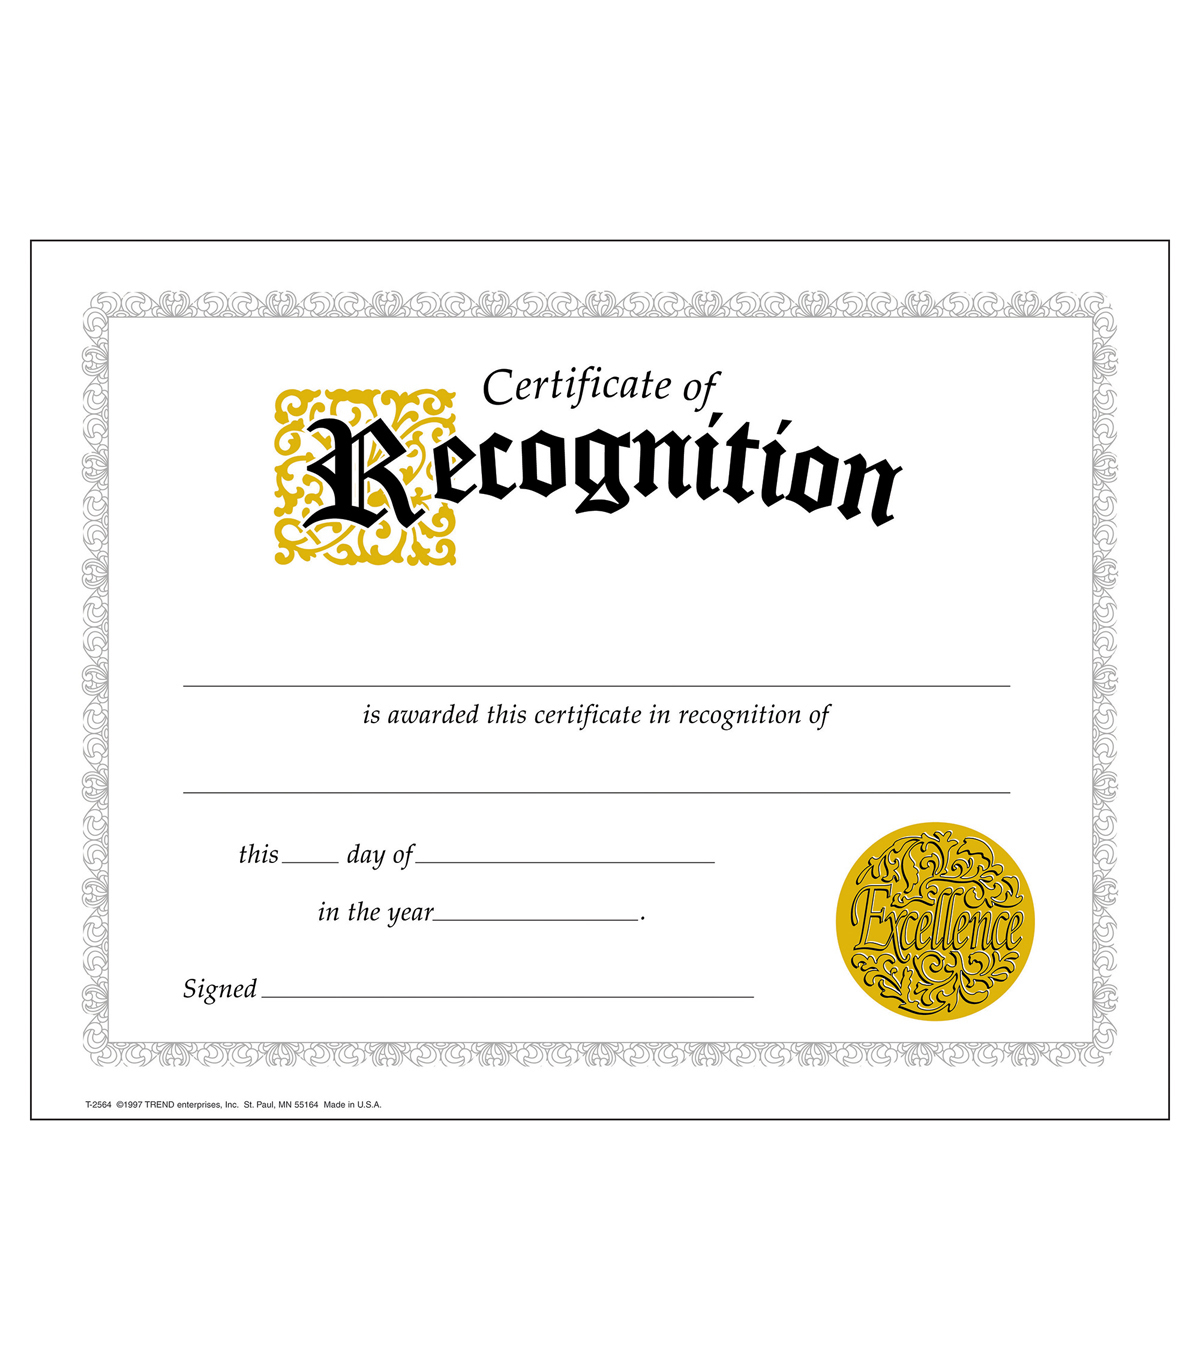 TREND enterprises, Inc. Recognition Certificates, 30 Per Pack, 6 Packs